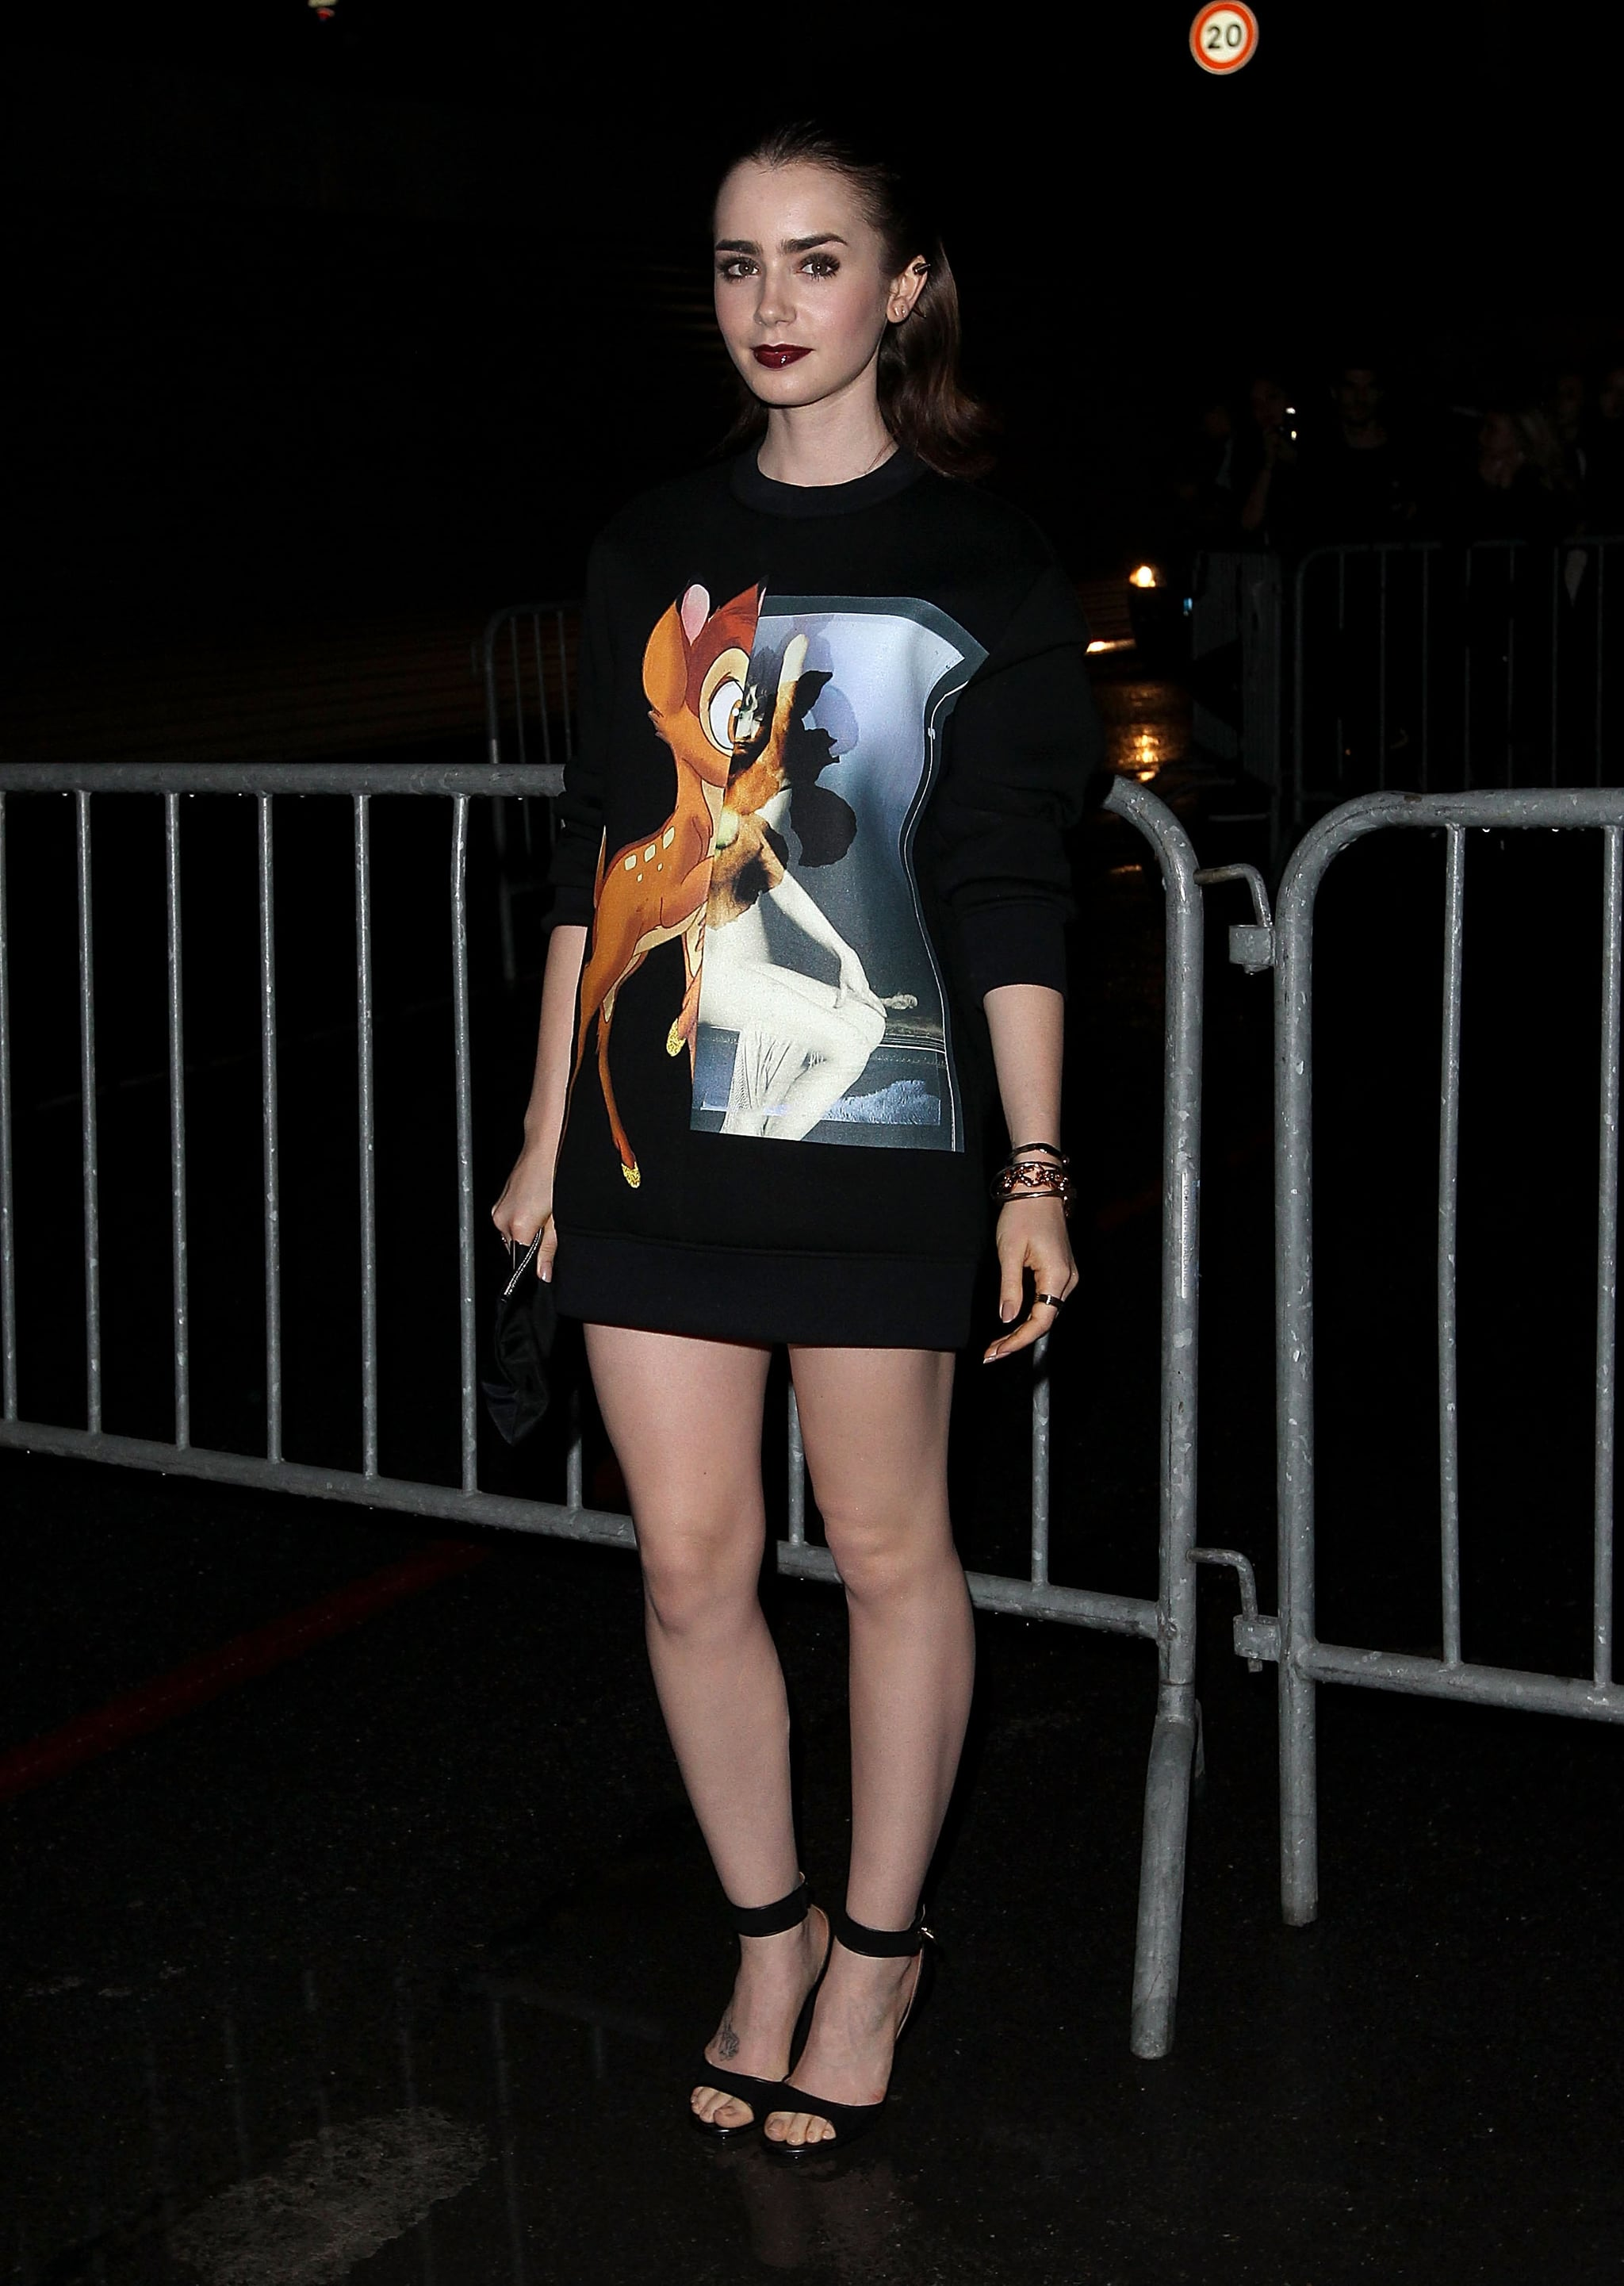 Lily Collins at the Spring 2014 Givenchy Runway Show